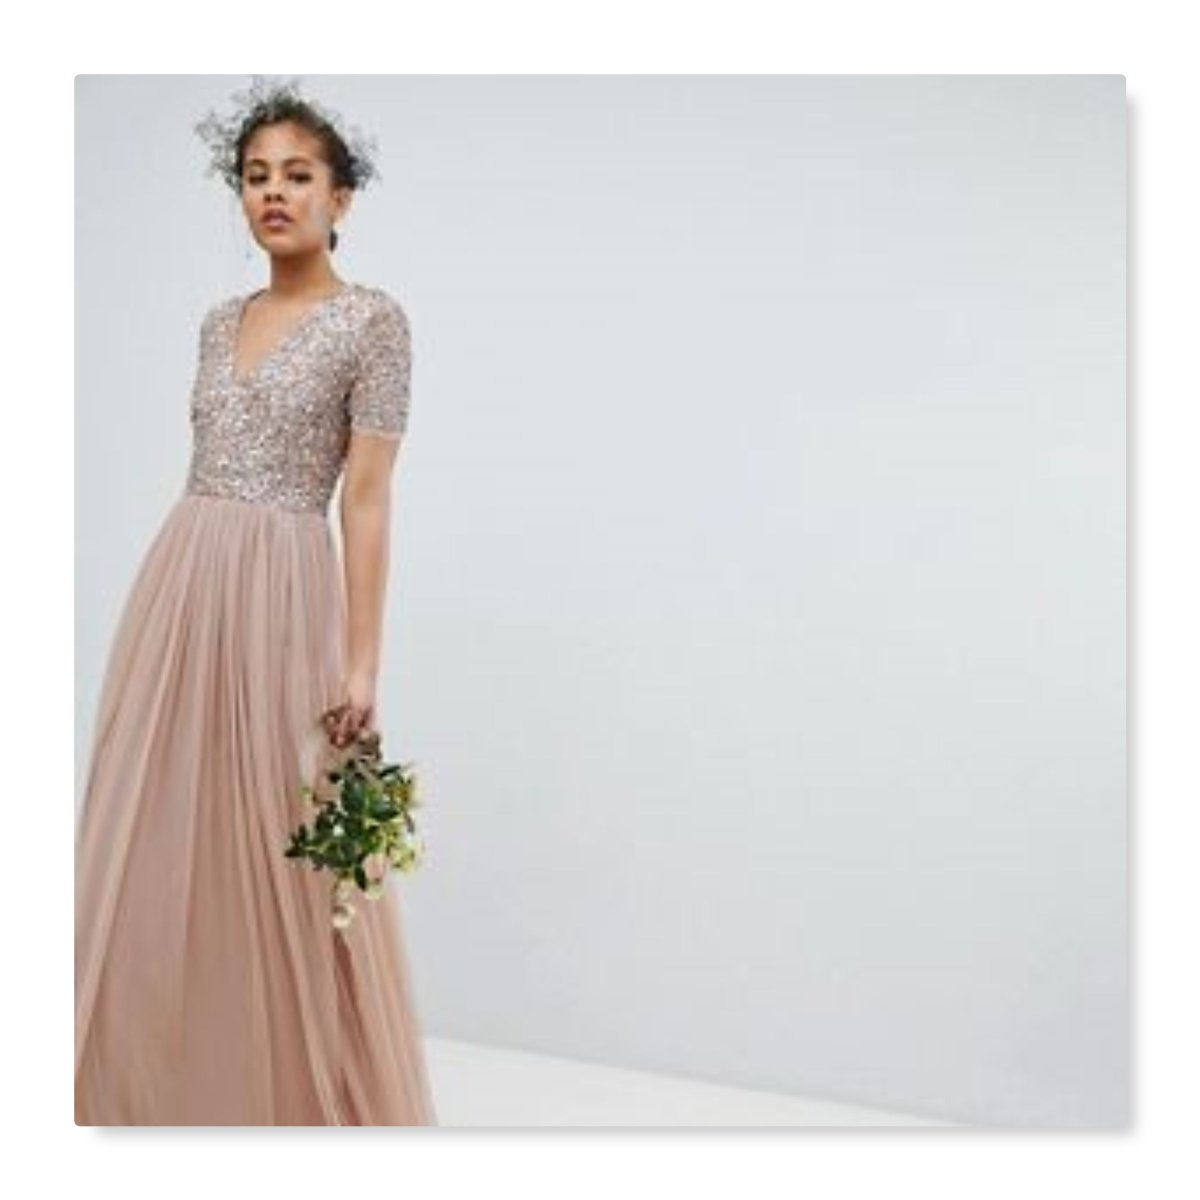 52c882fe8ef  Maya  Bridesmaids Dresses -  Asos Taupe Blush £35.00 Each Pre-Loved  Excellent Condition Sizes - 8